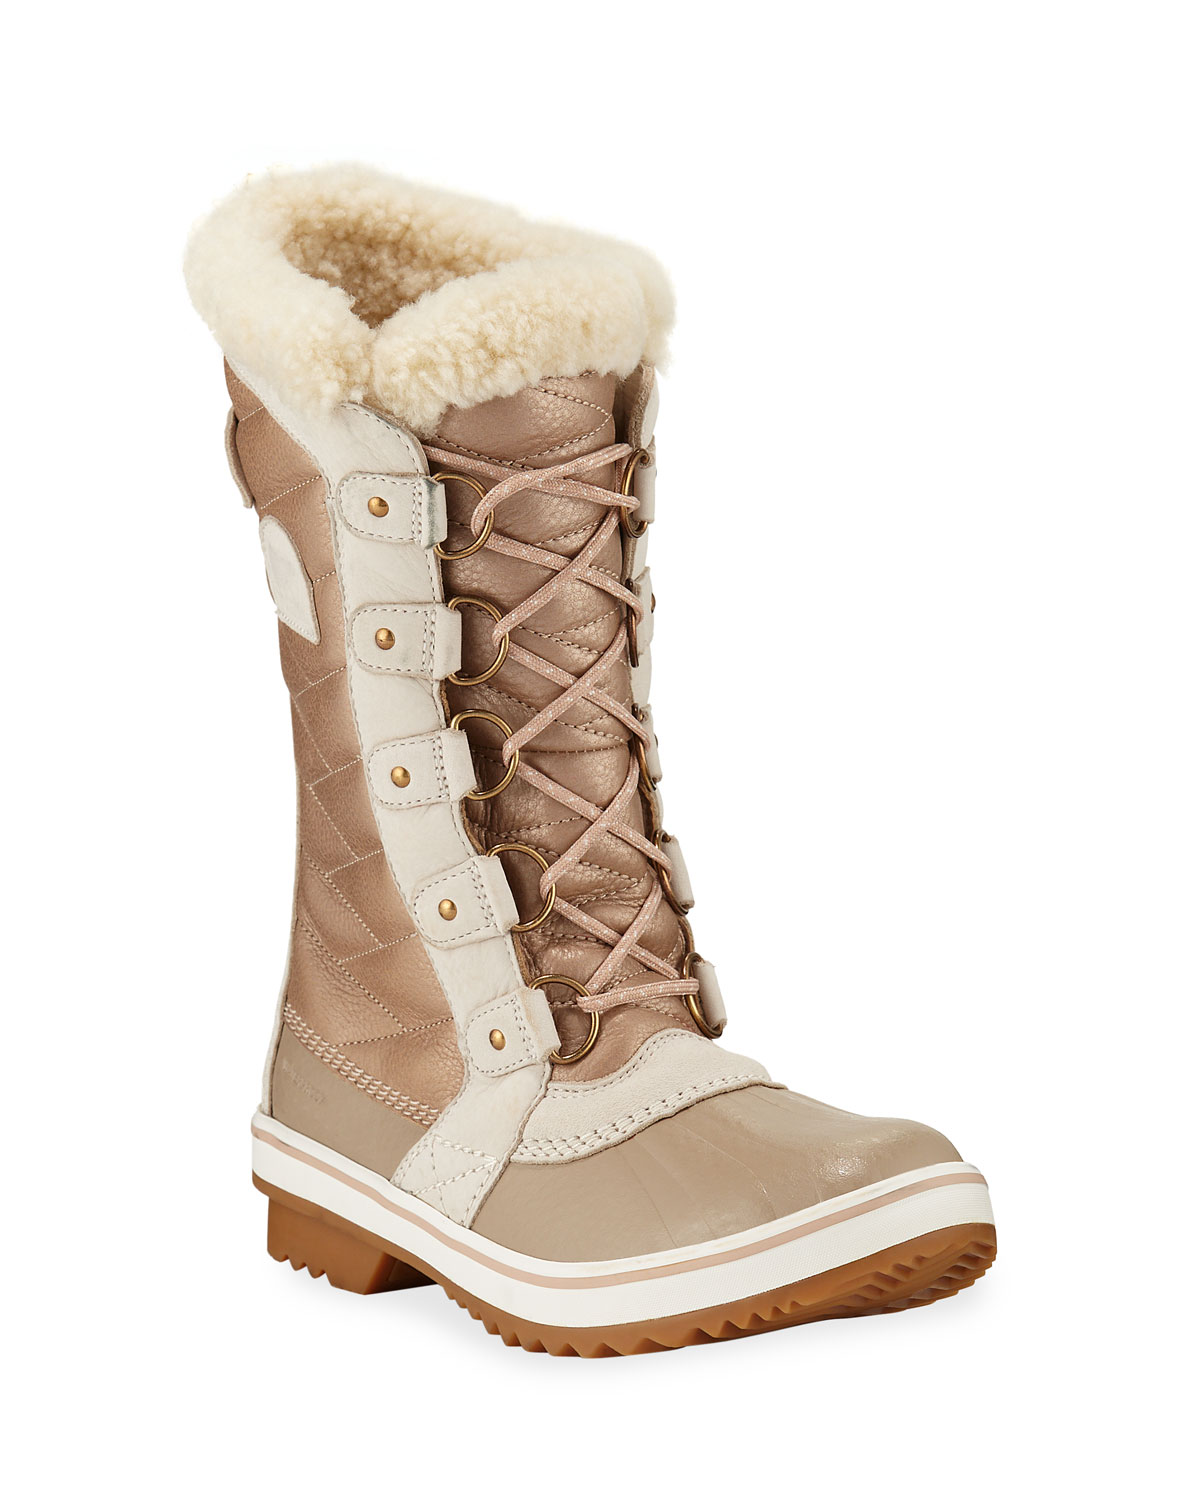 Sorel Boots TOFINO II LUX QUILTED BOOTS